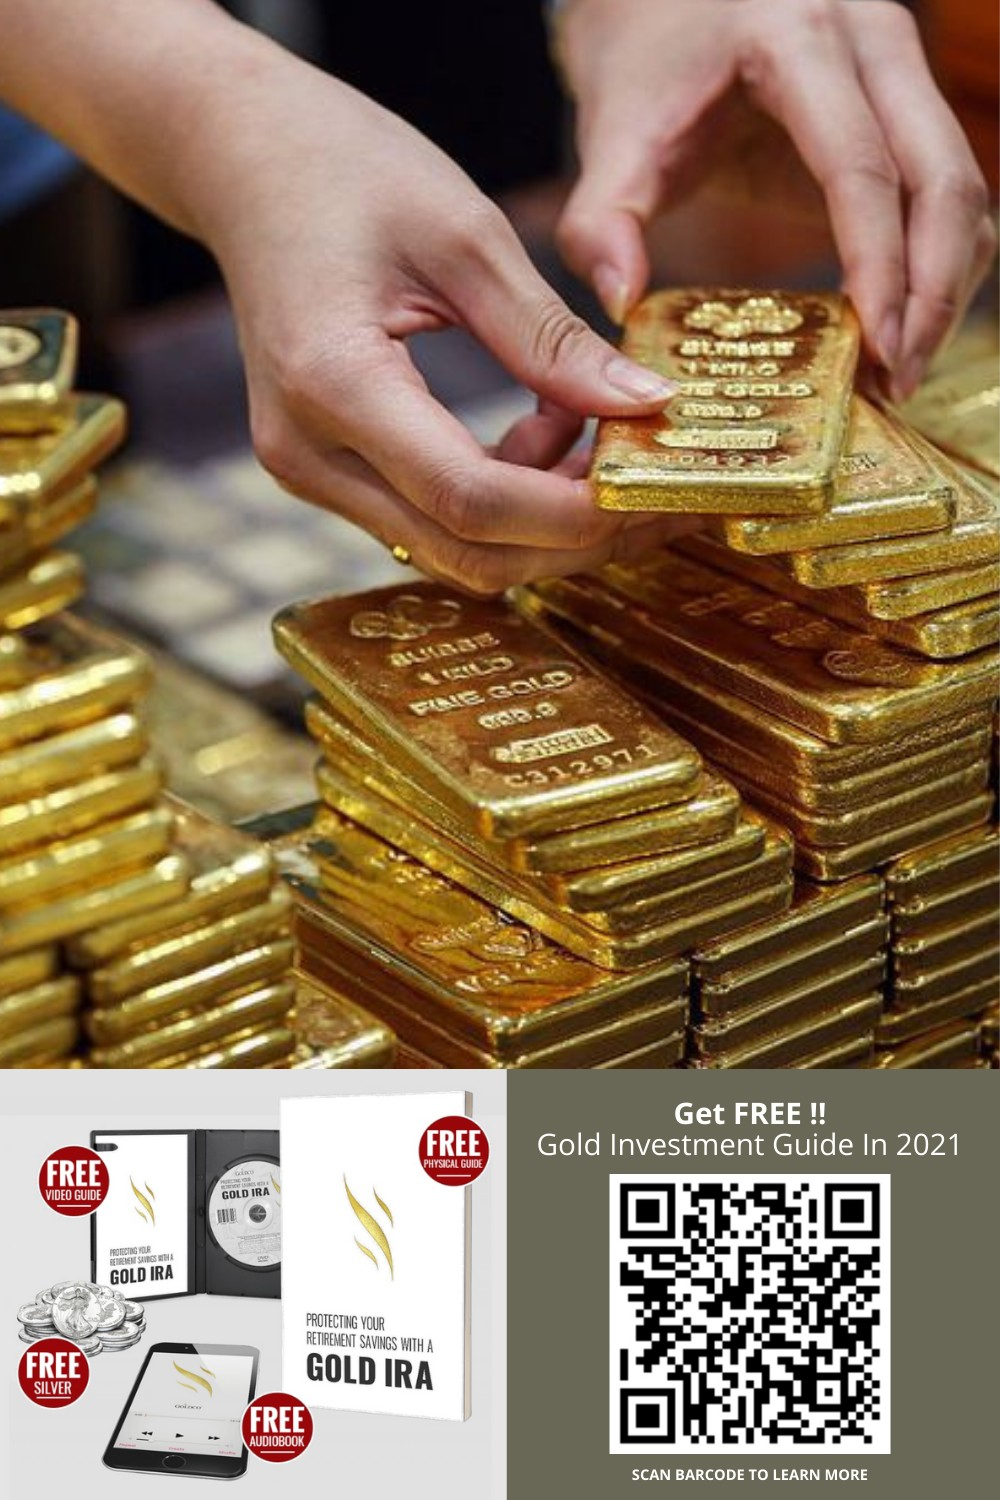 Gold Investment Guide 2021